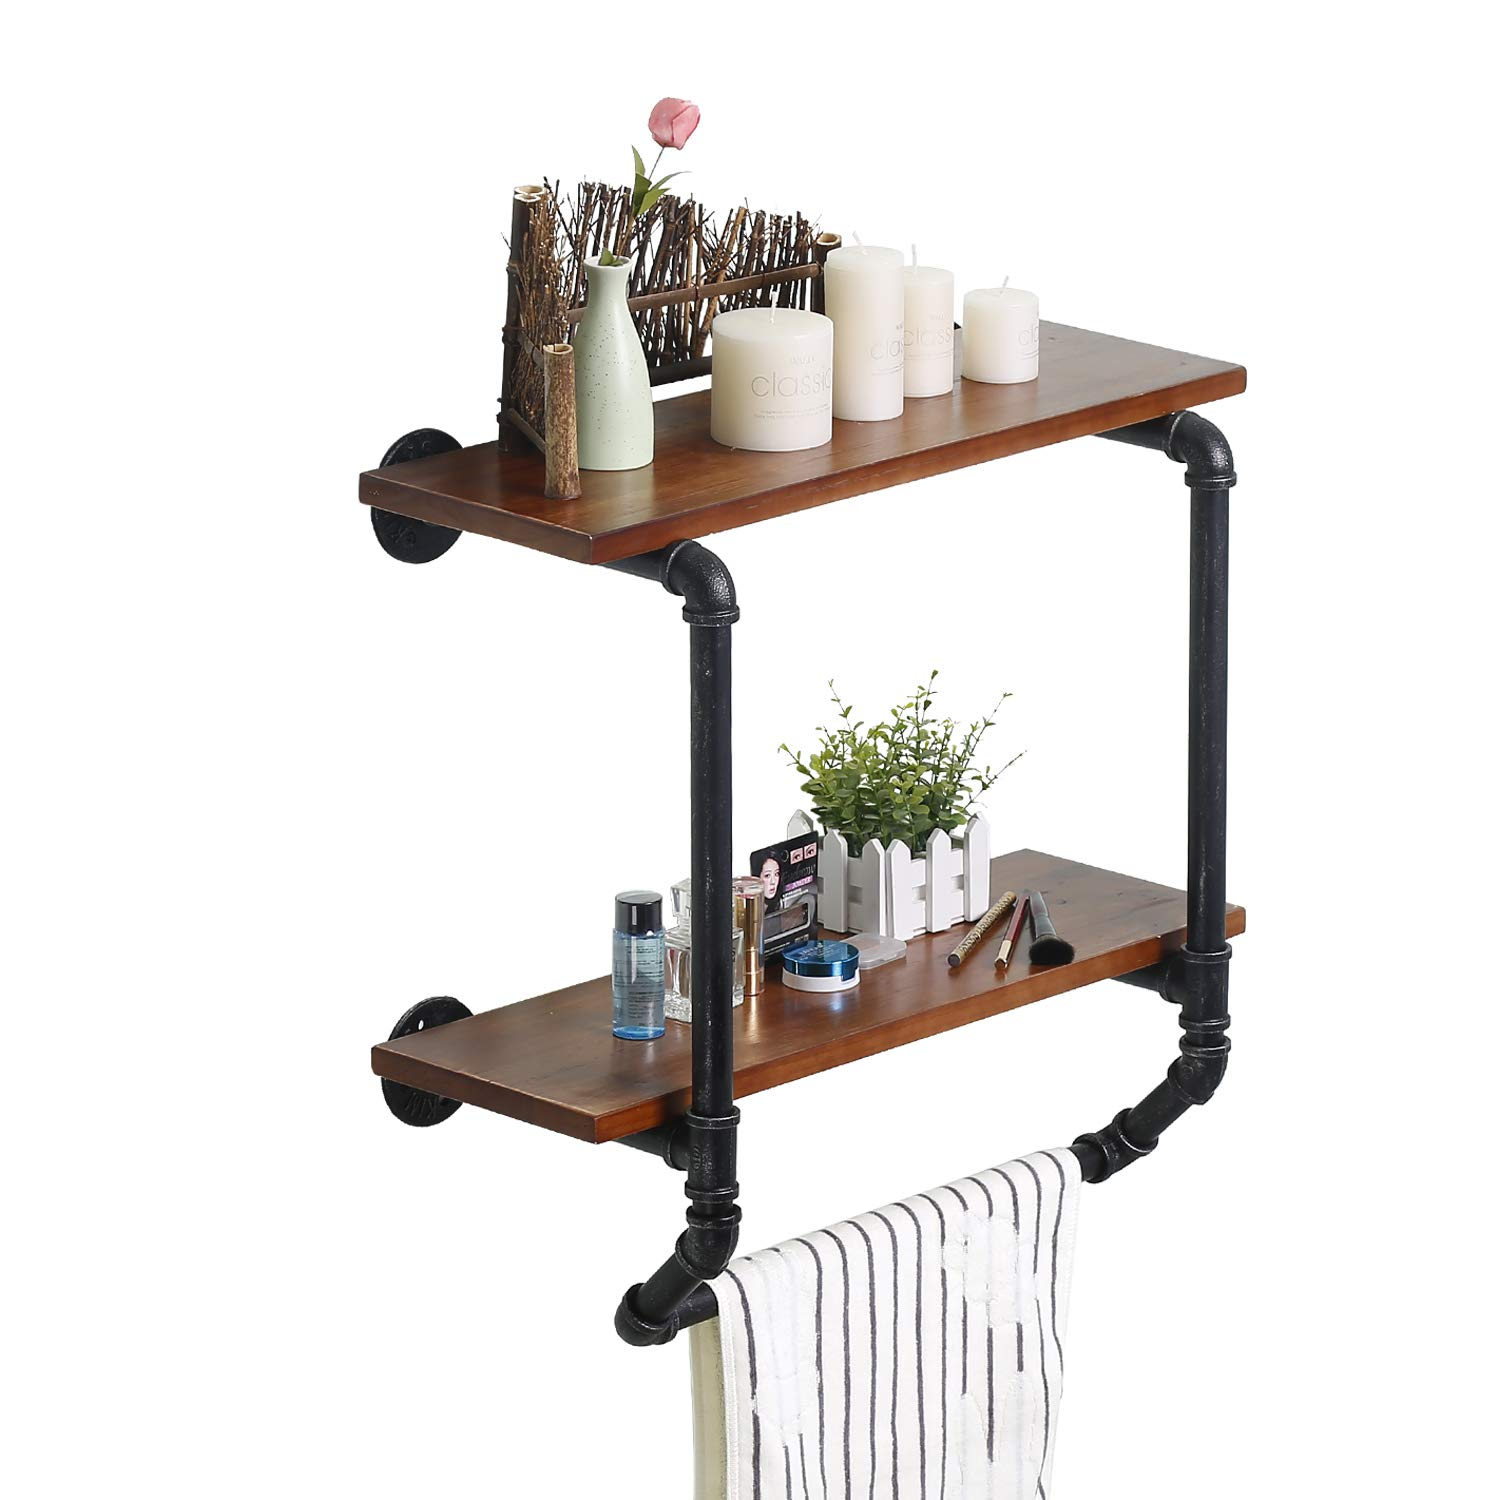 Ucared Industrial Pipe 2 Tiers Wall Mounted Shelves,Rustic Wall Shelf with Towel Bar,24'' Towel Racks for Bathroom Organizer Storage,Wood Metal Wall Mounted Towel Bar,Bathroom Shelf Over Toilet,Hanging